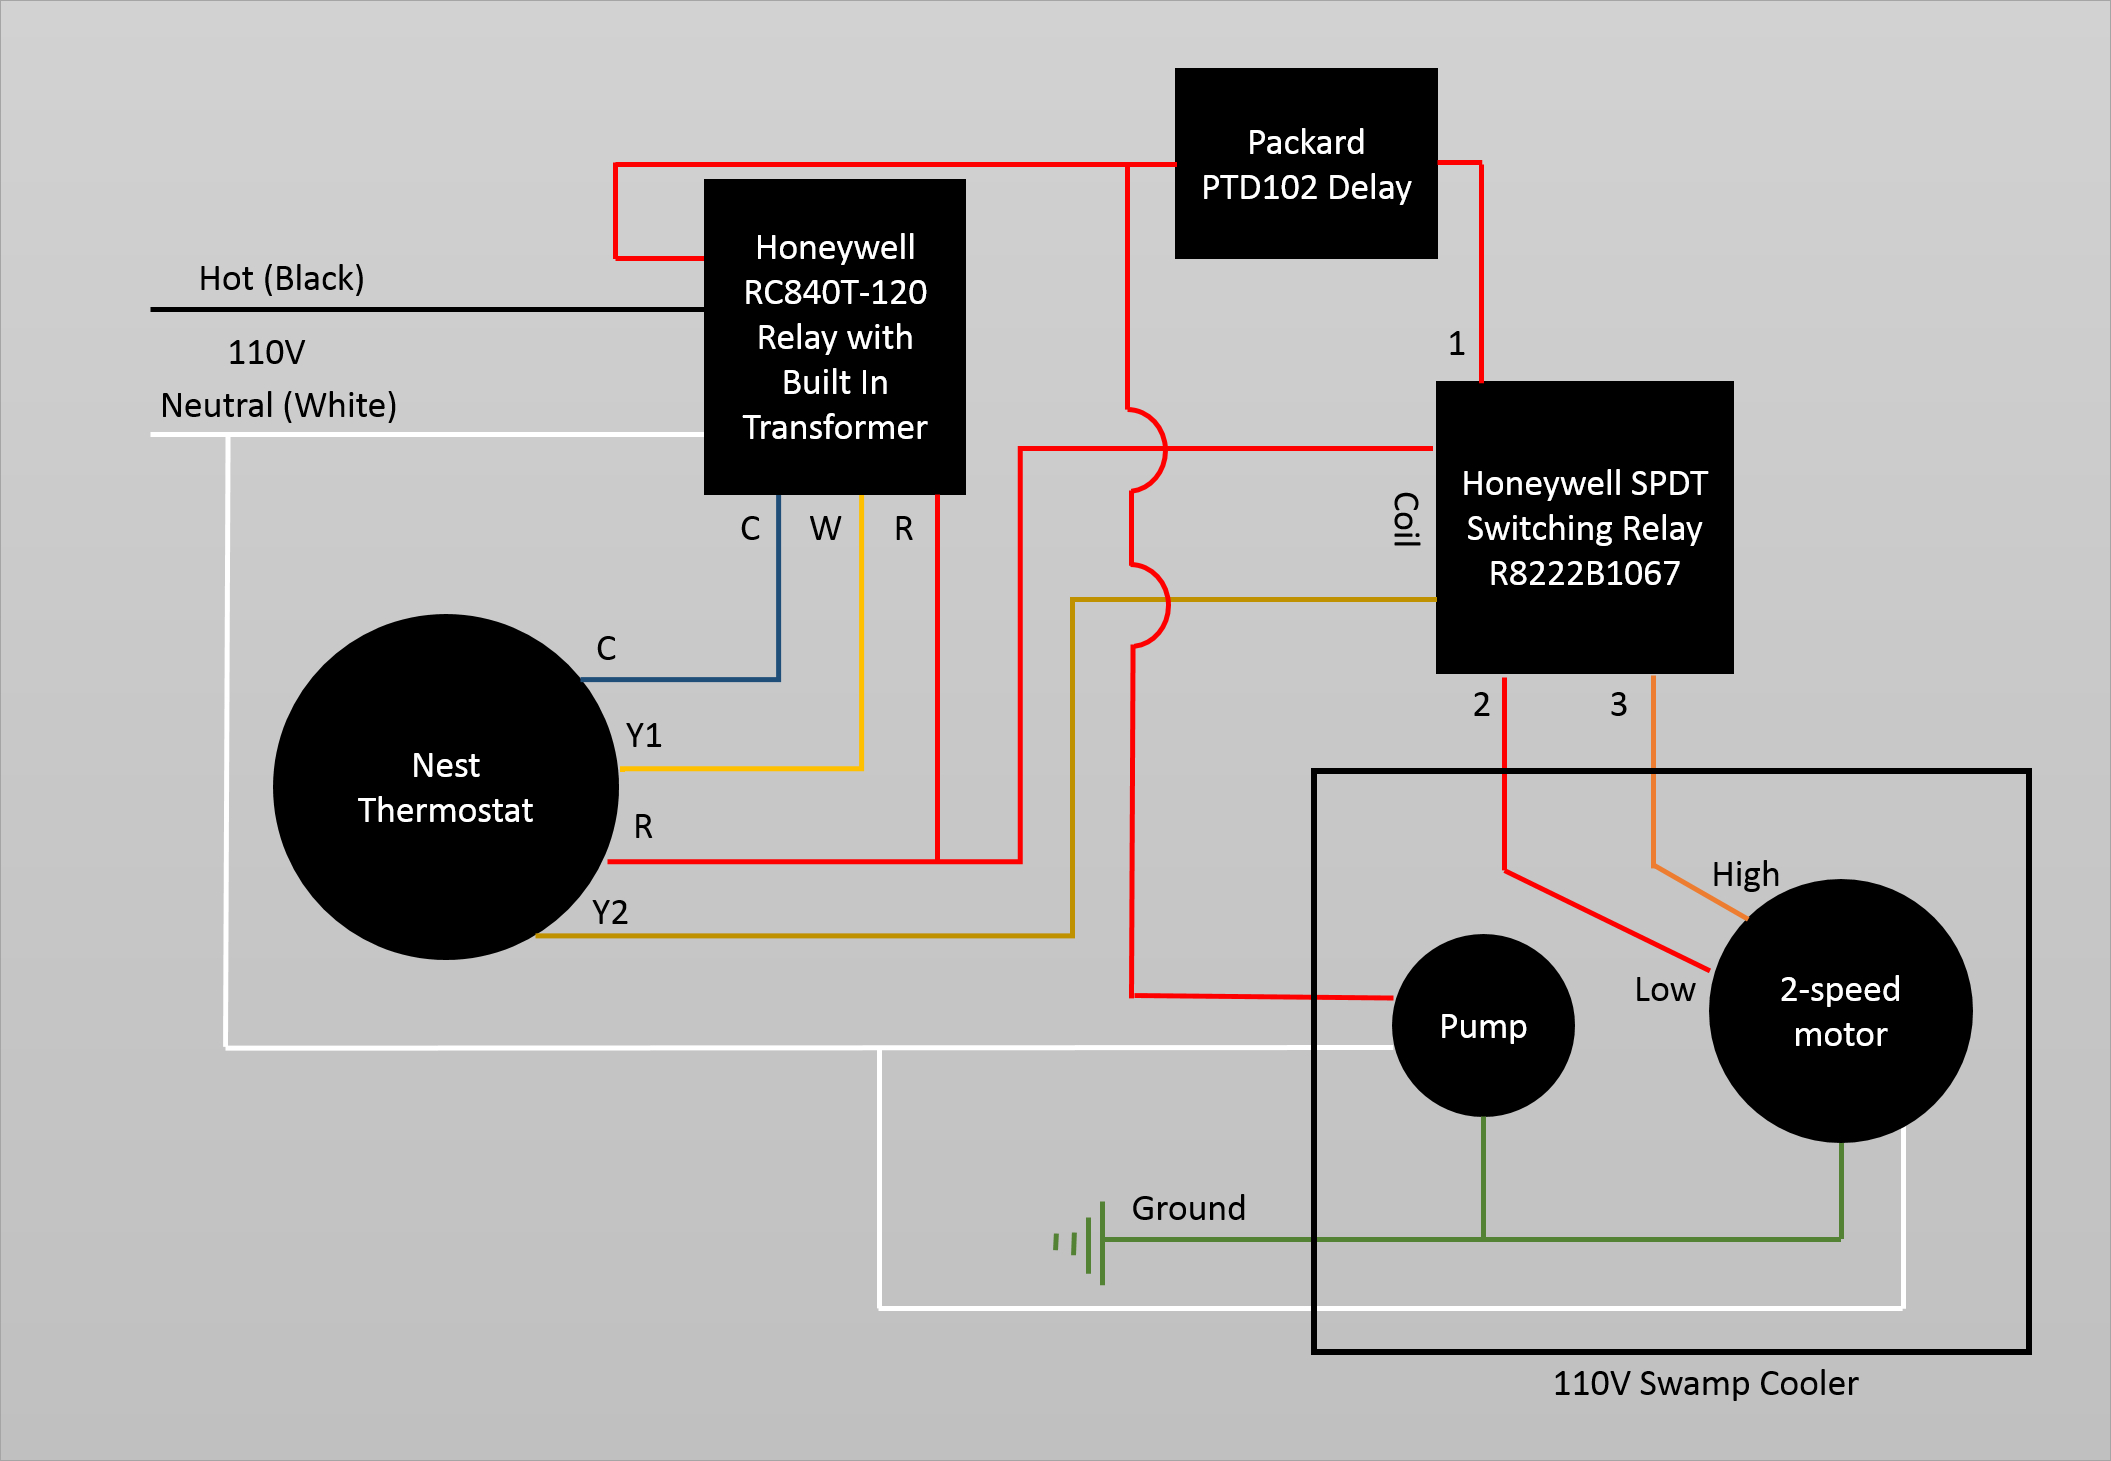 Wiring - Controlling 110V Swamp Cooler Using Nest Thermostat - Home - Nest Wiring Diagram For Two Stage Fan